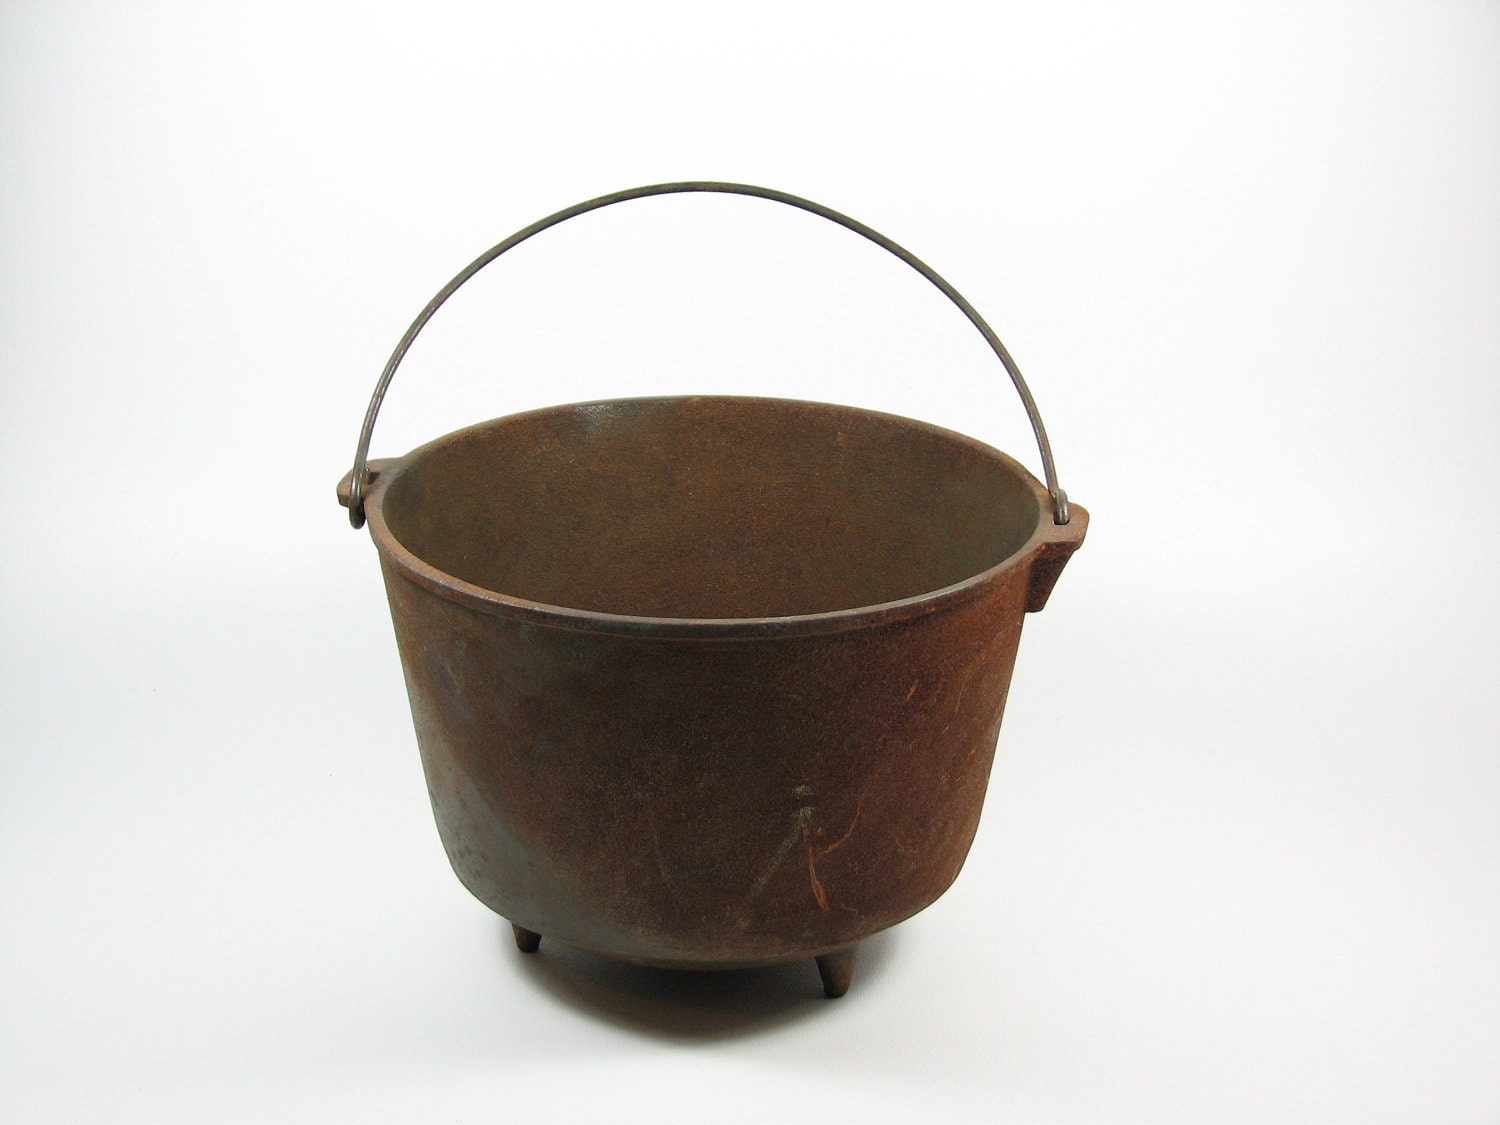 Vintage Cast Iron Kettle Pot With Handle By Bridgewoodplace